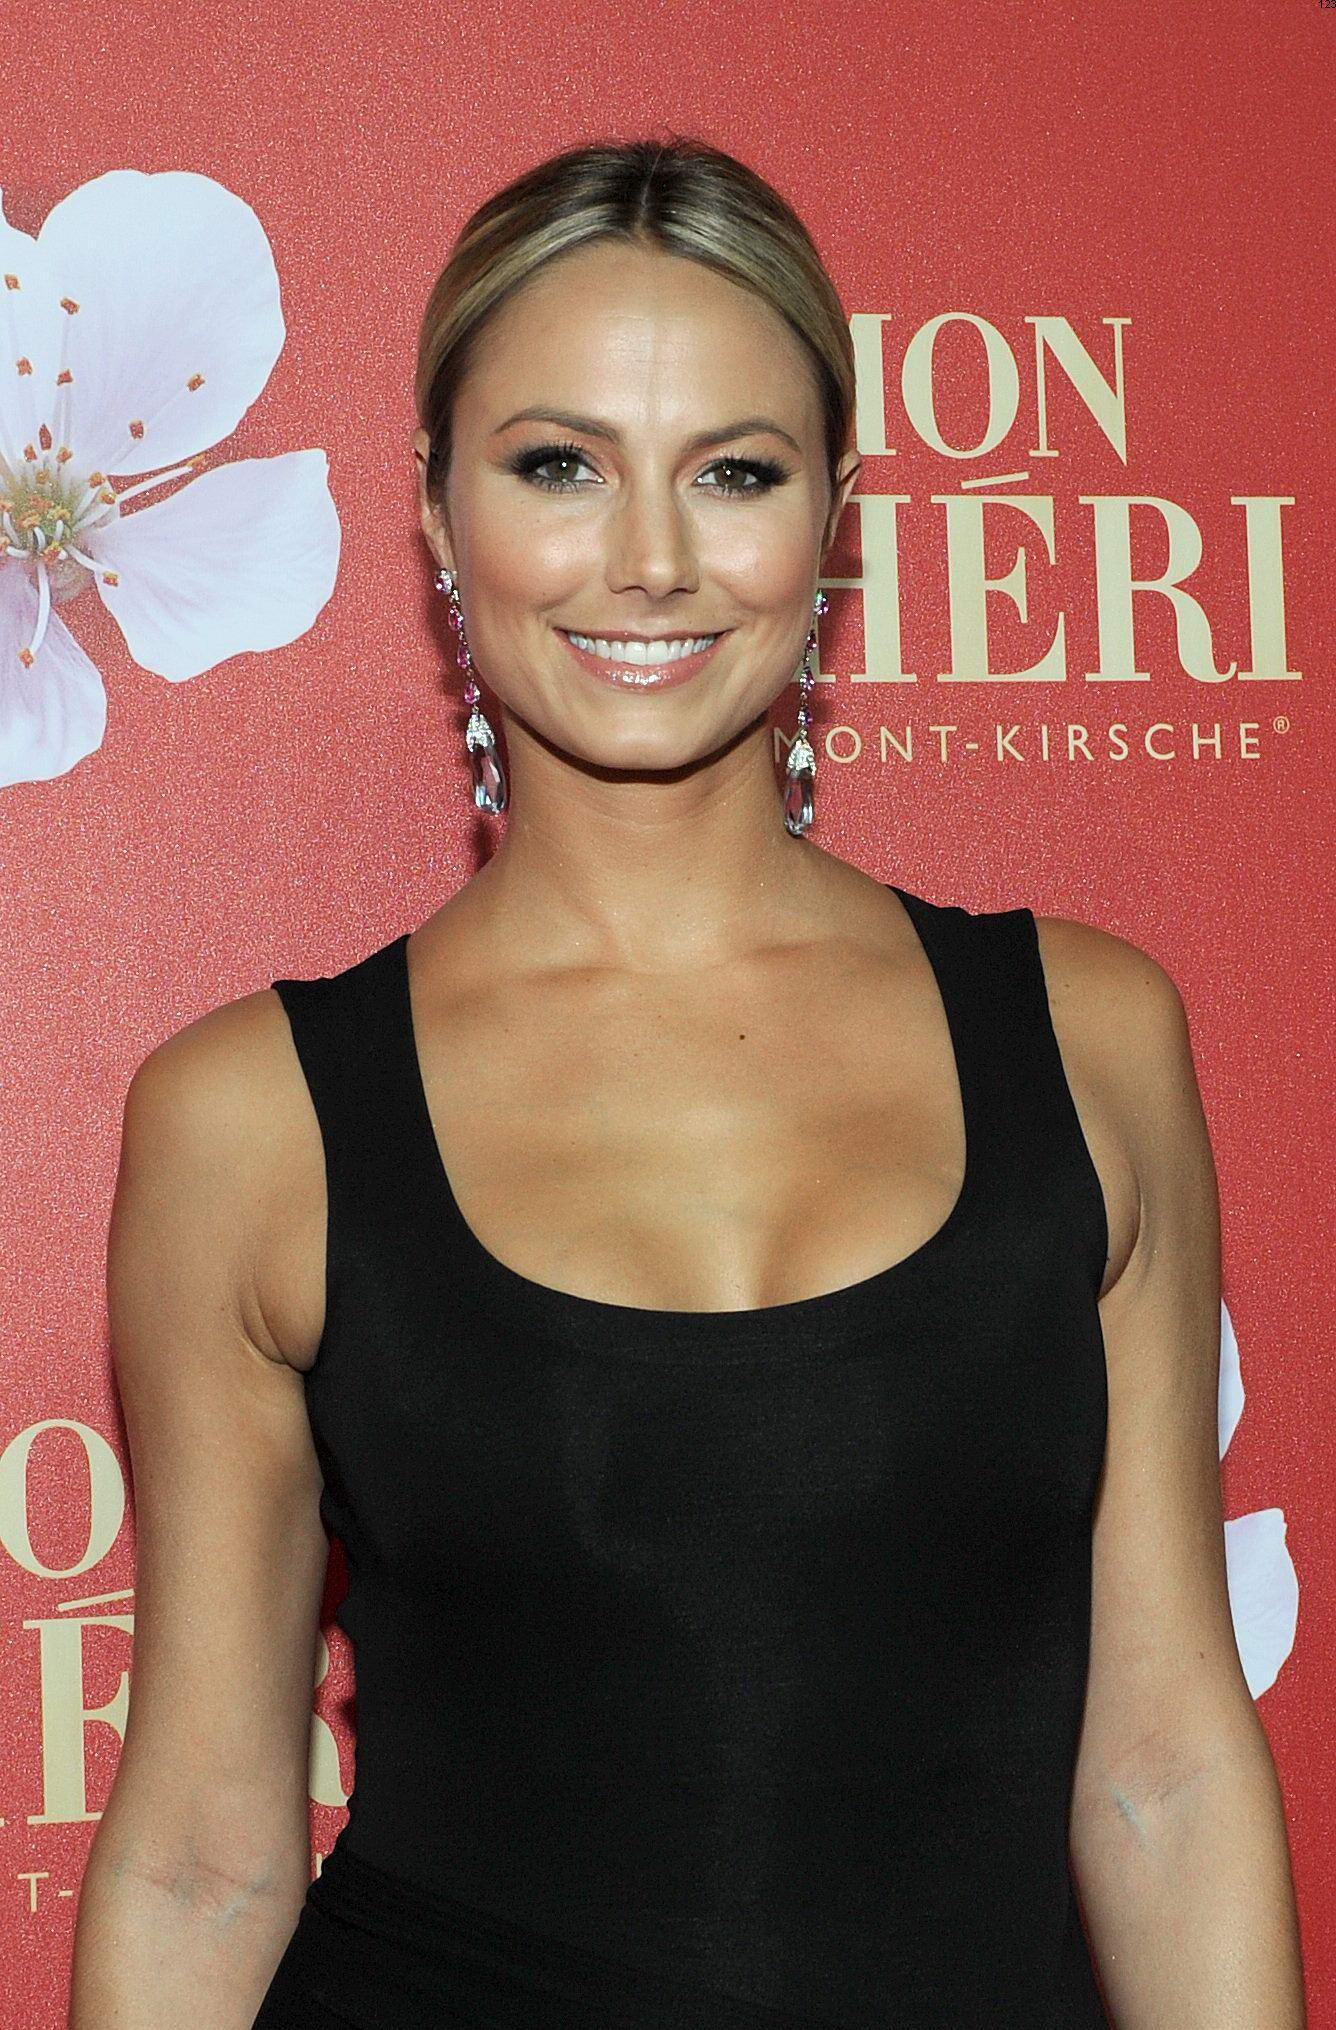 Beauty facial pics stacy keibler want